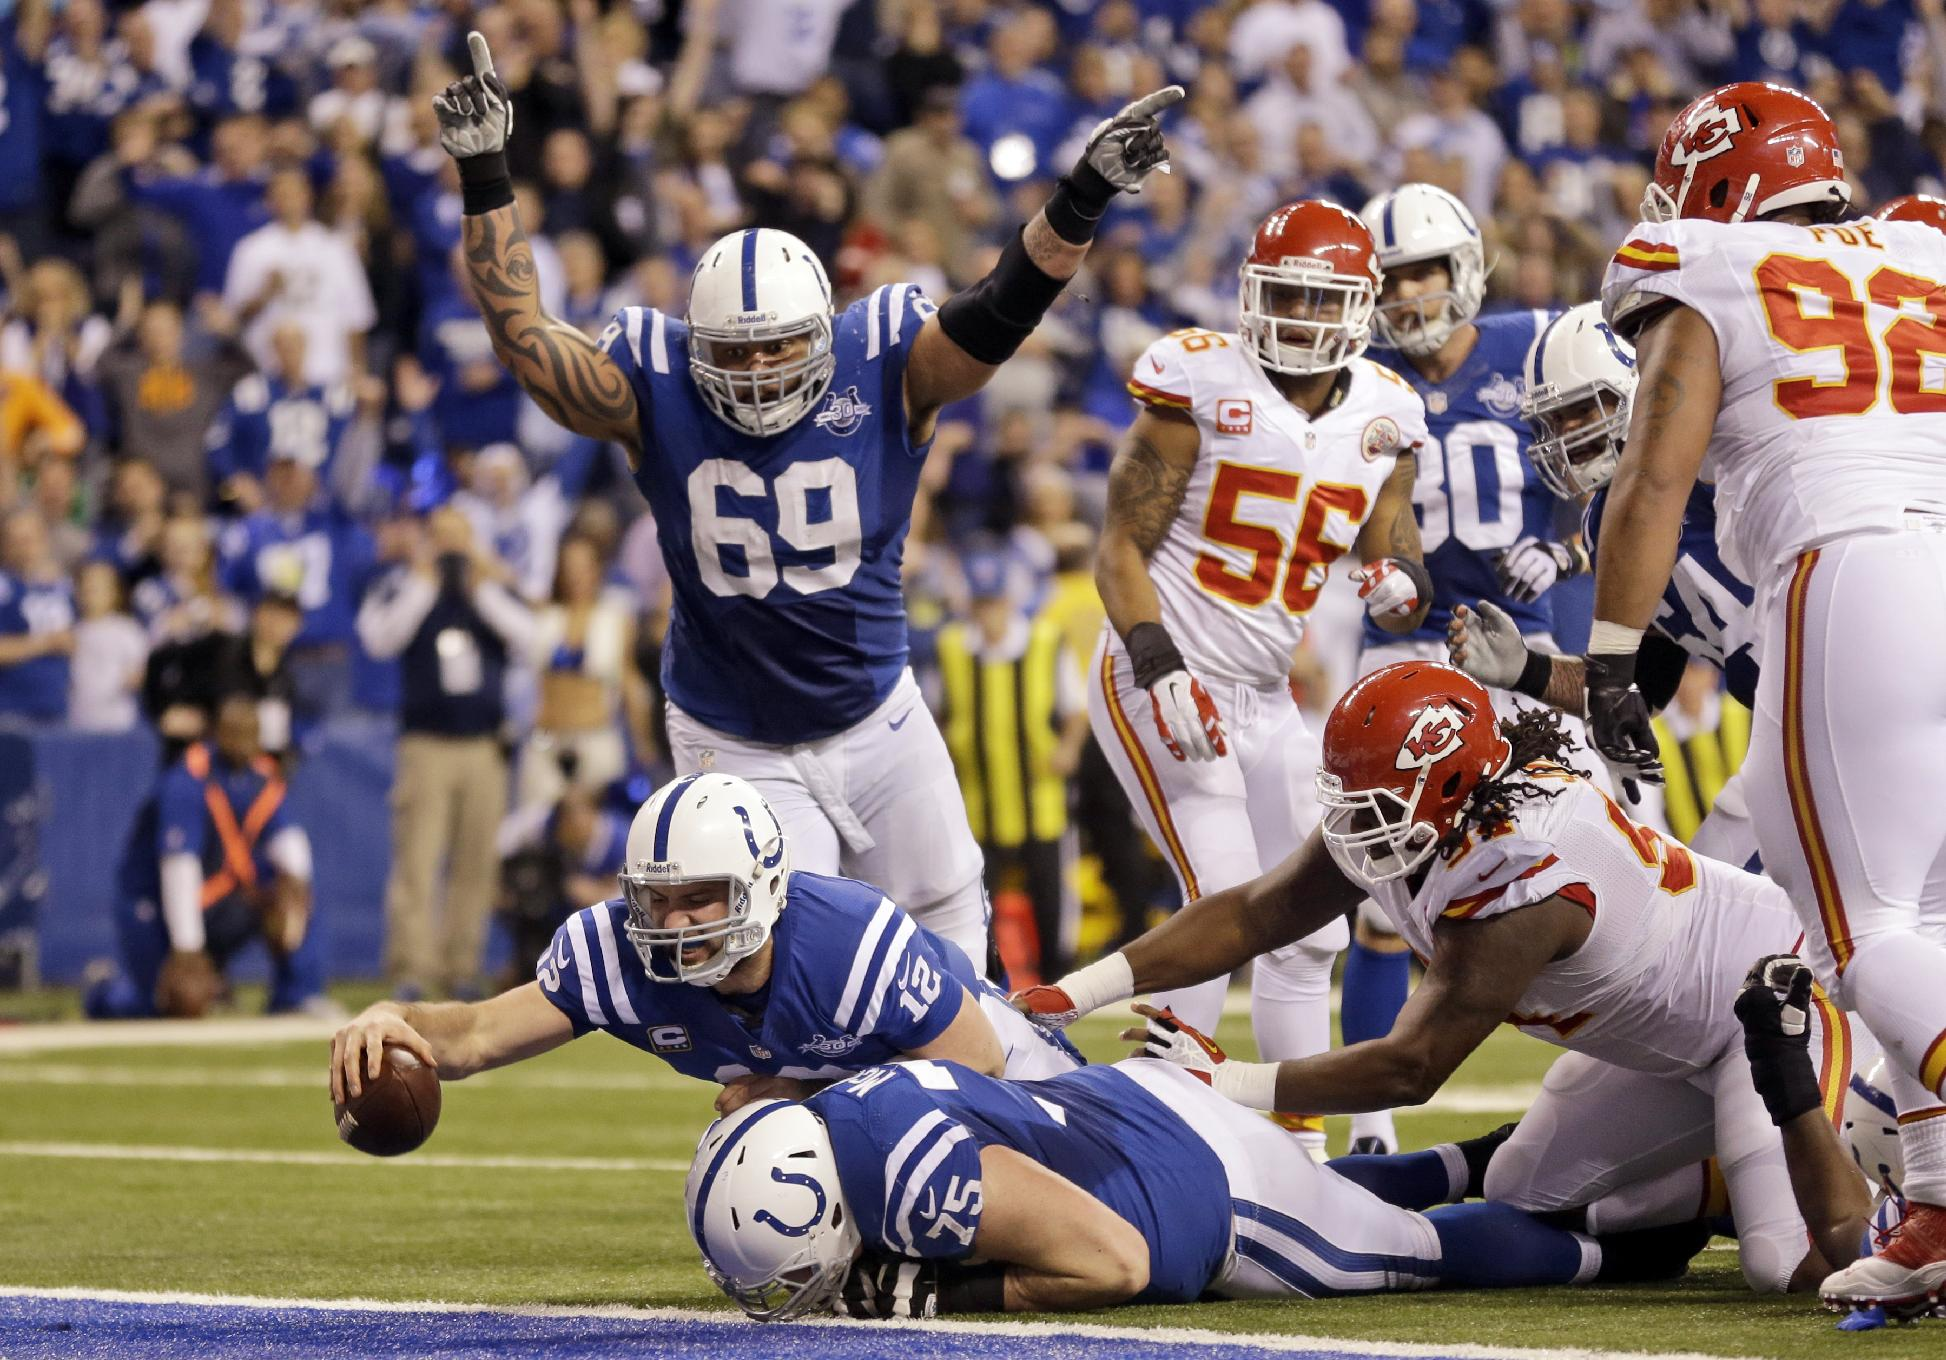 Column: Once again, things end up rosy for NFL